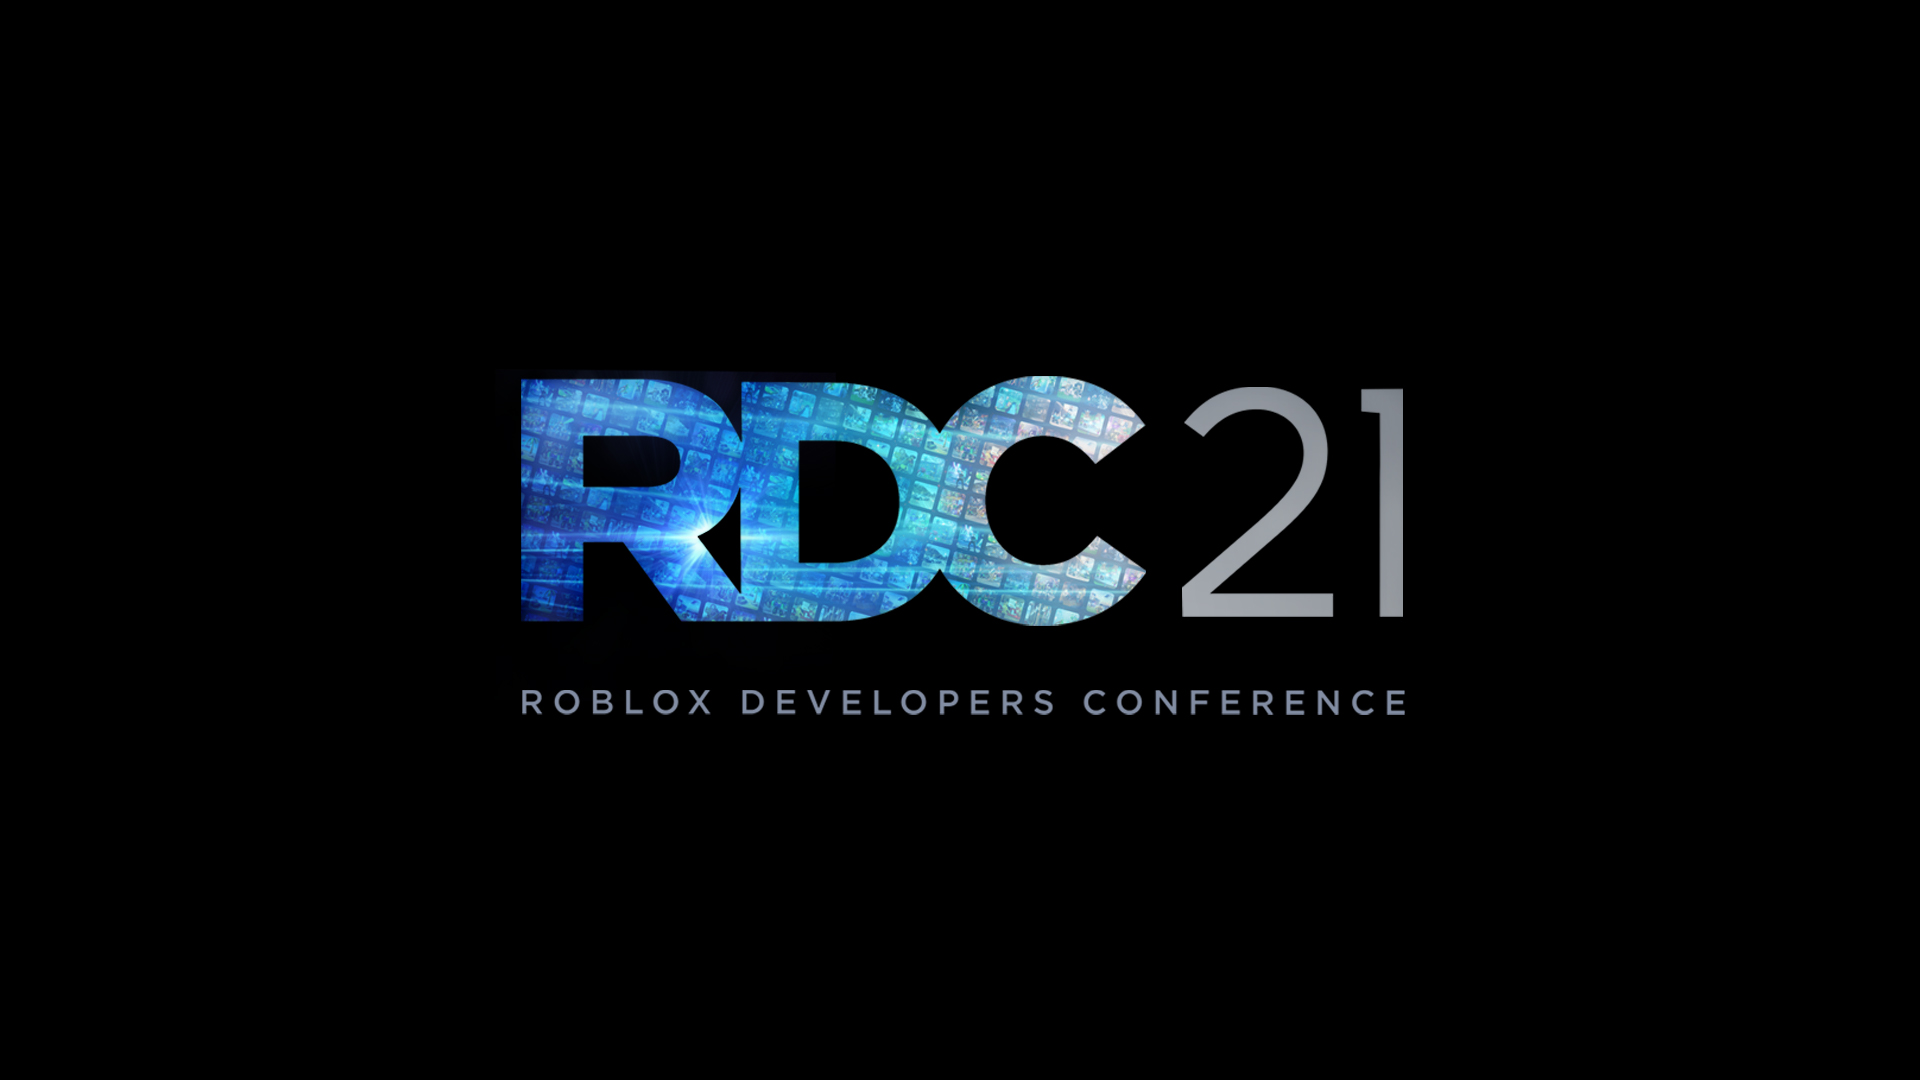 rdc-2021:-updates-on-roblox's-vision-and-the-path-forward